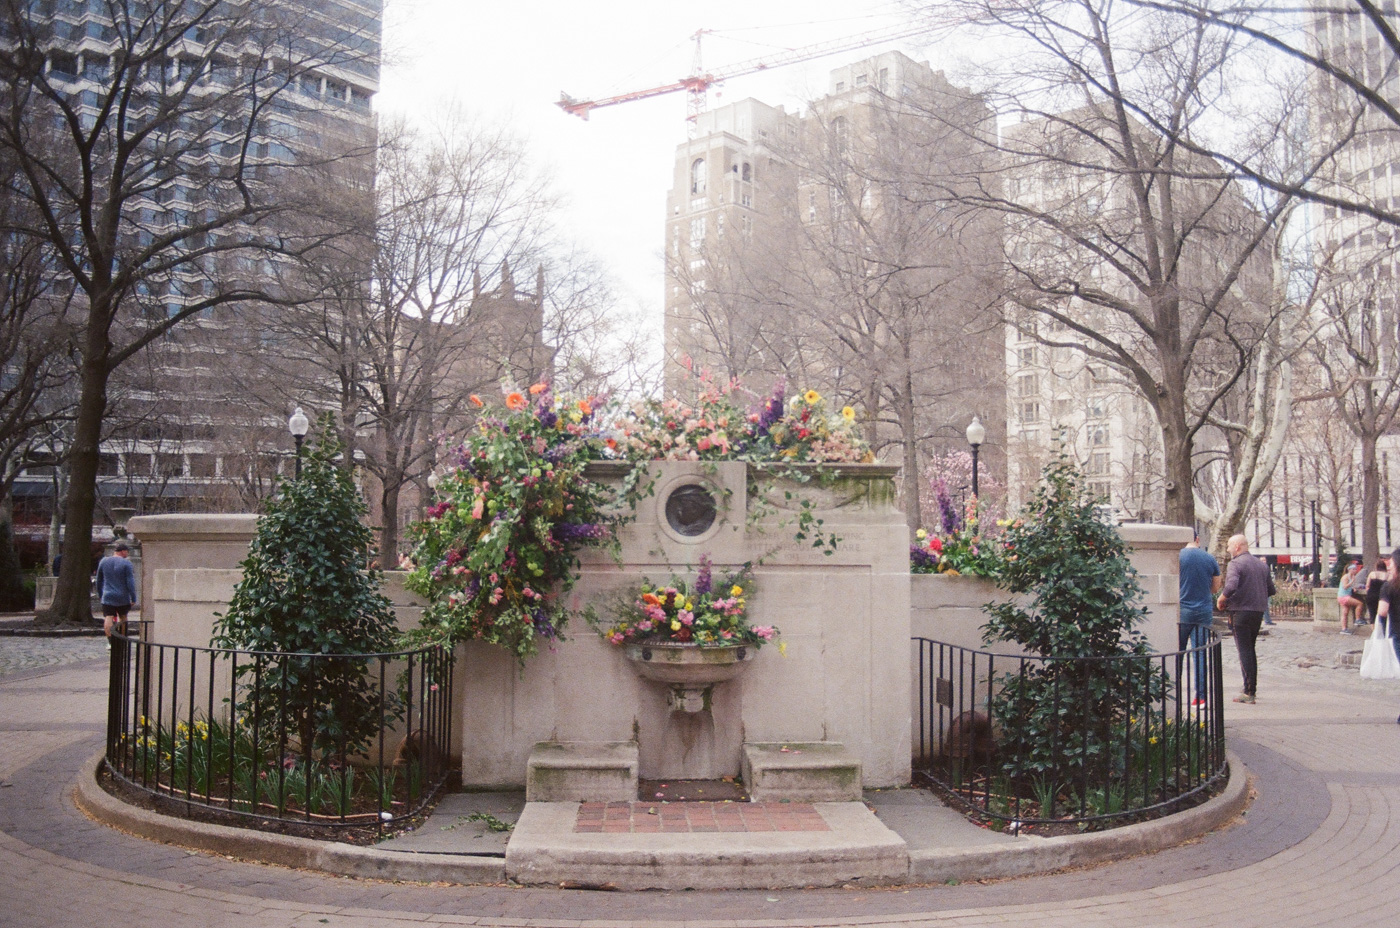 Flowers in Rittenhouse Square